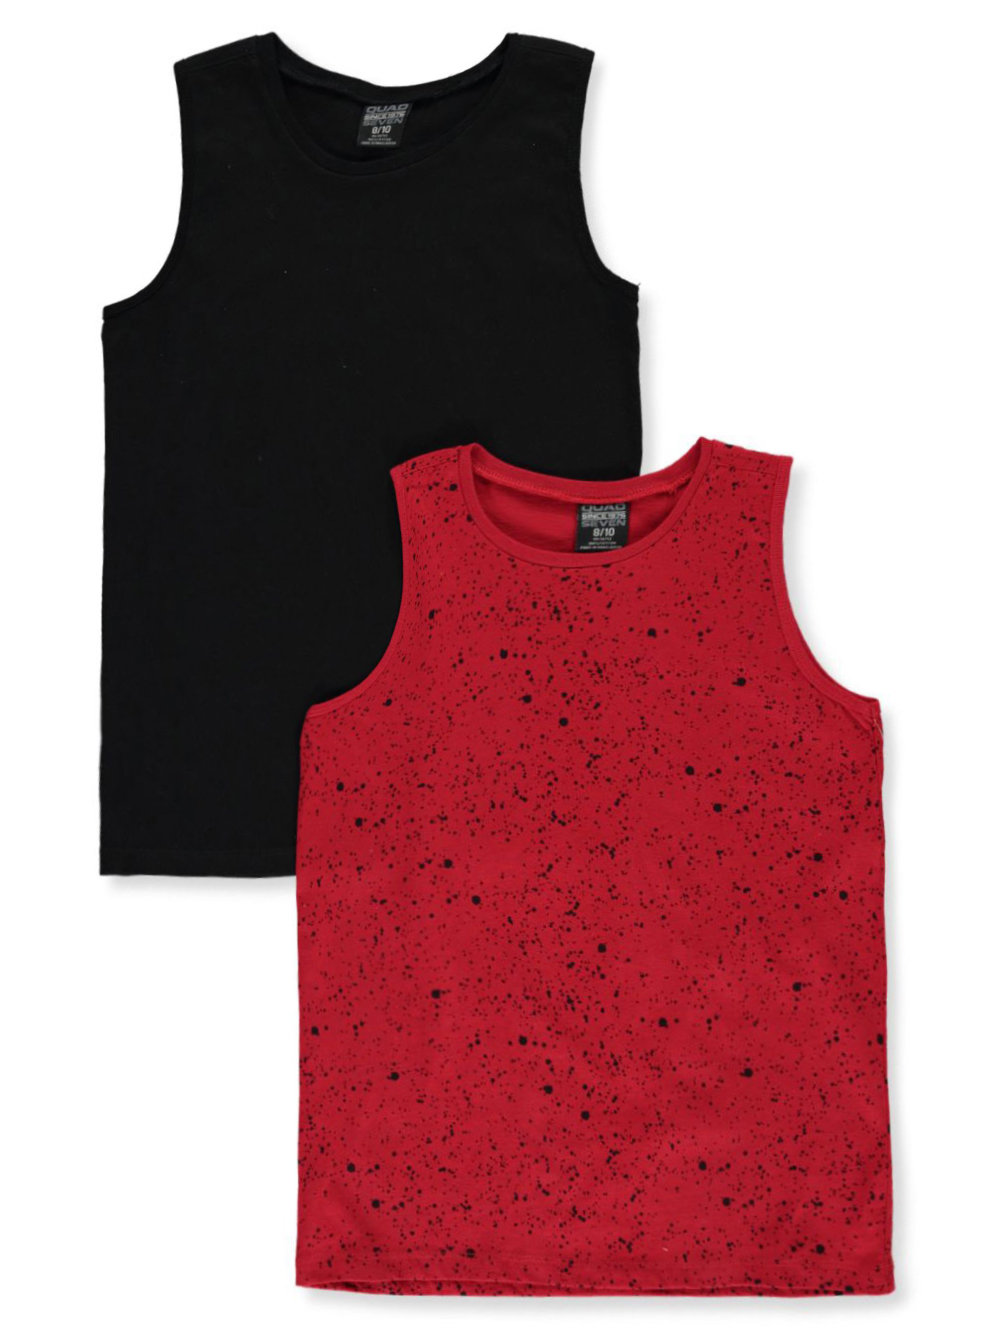 Size 12-14 Tank for Boys